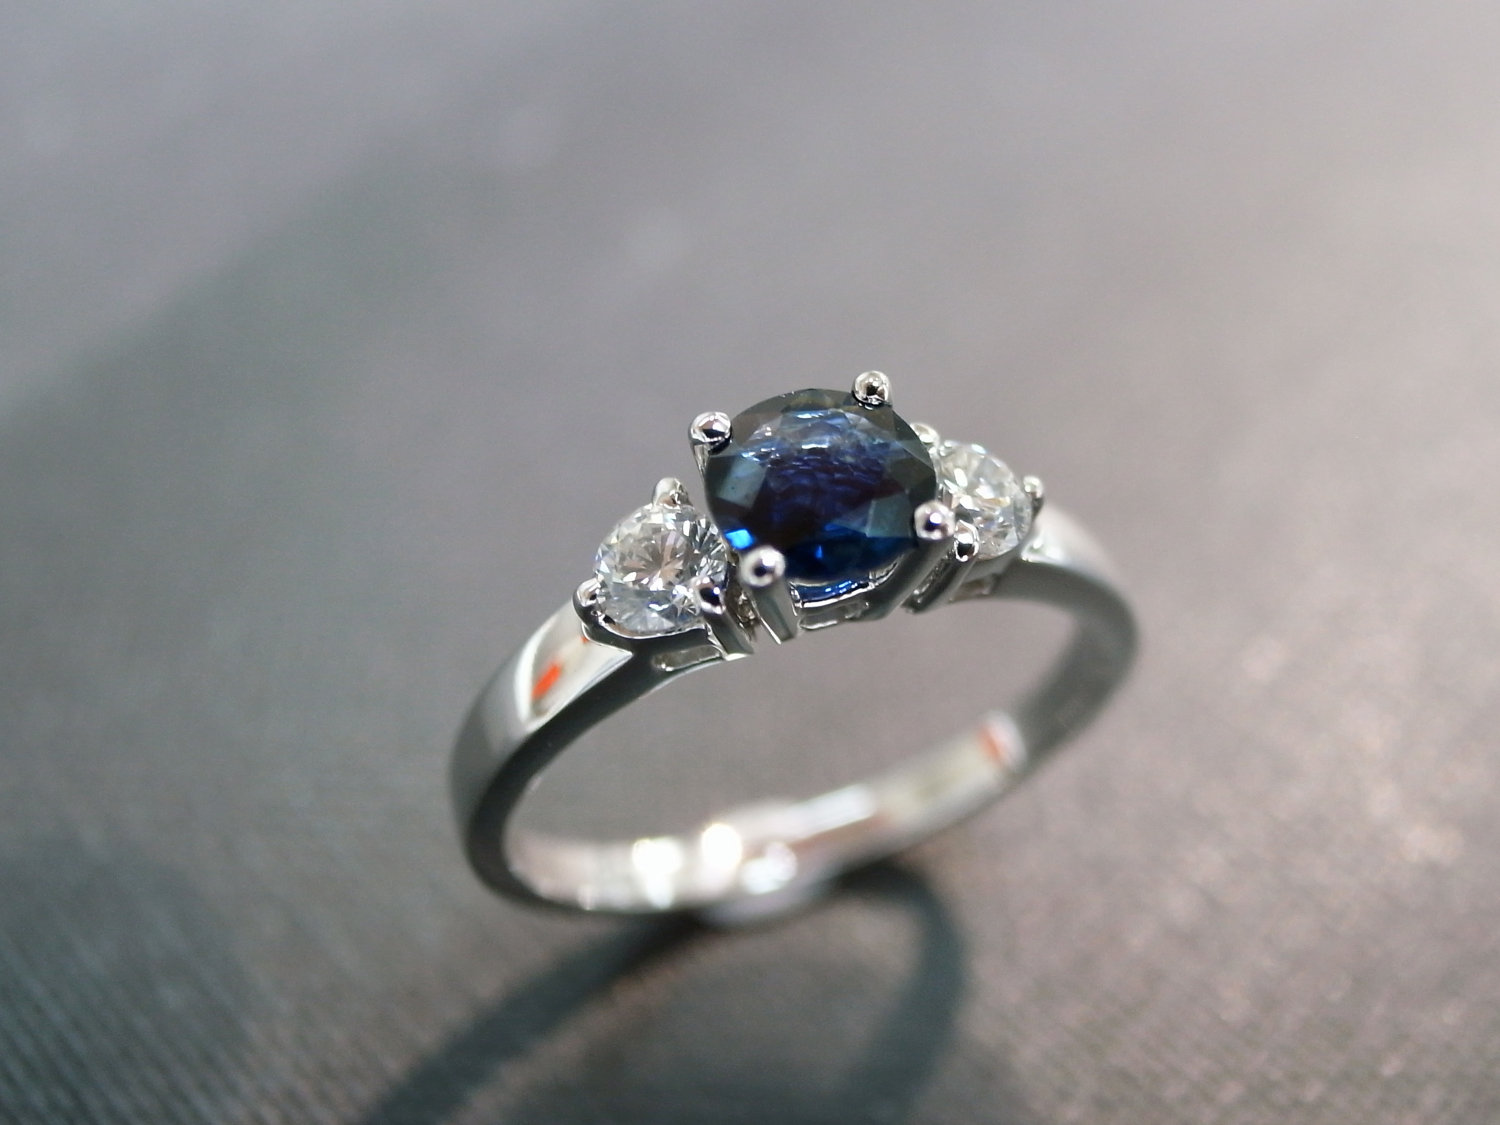 dark a kind small london sapphire light ring and rings products ooak available nestled at of one tomfoolery blue